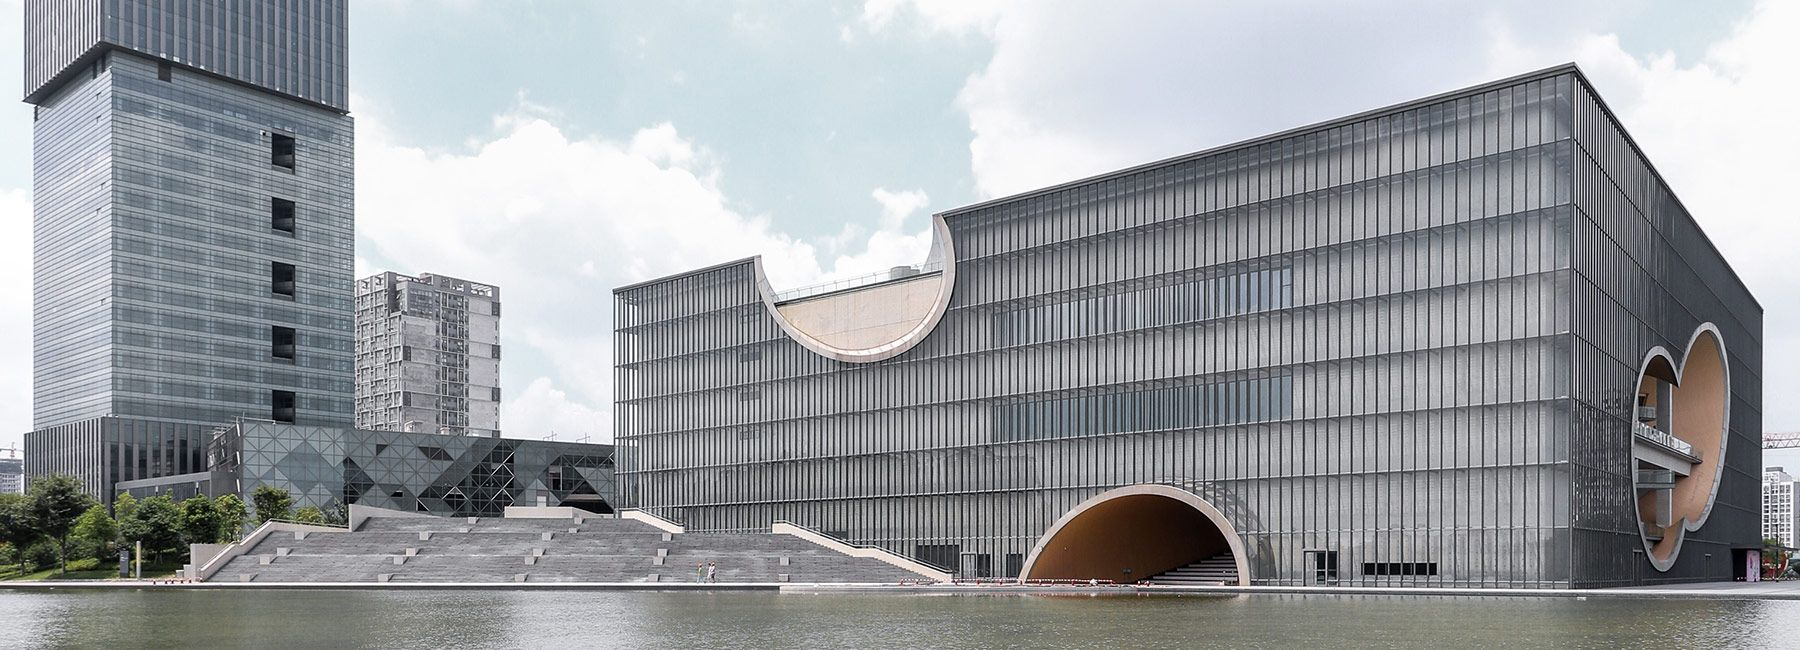 poly grand theater in shanghai by tadao ando